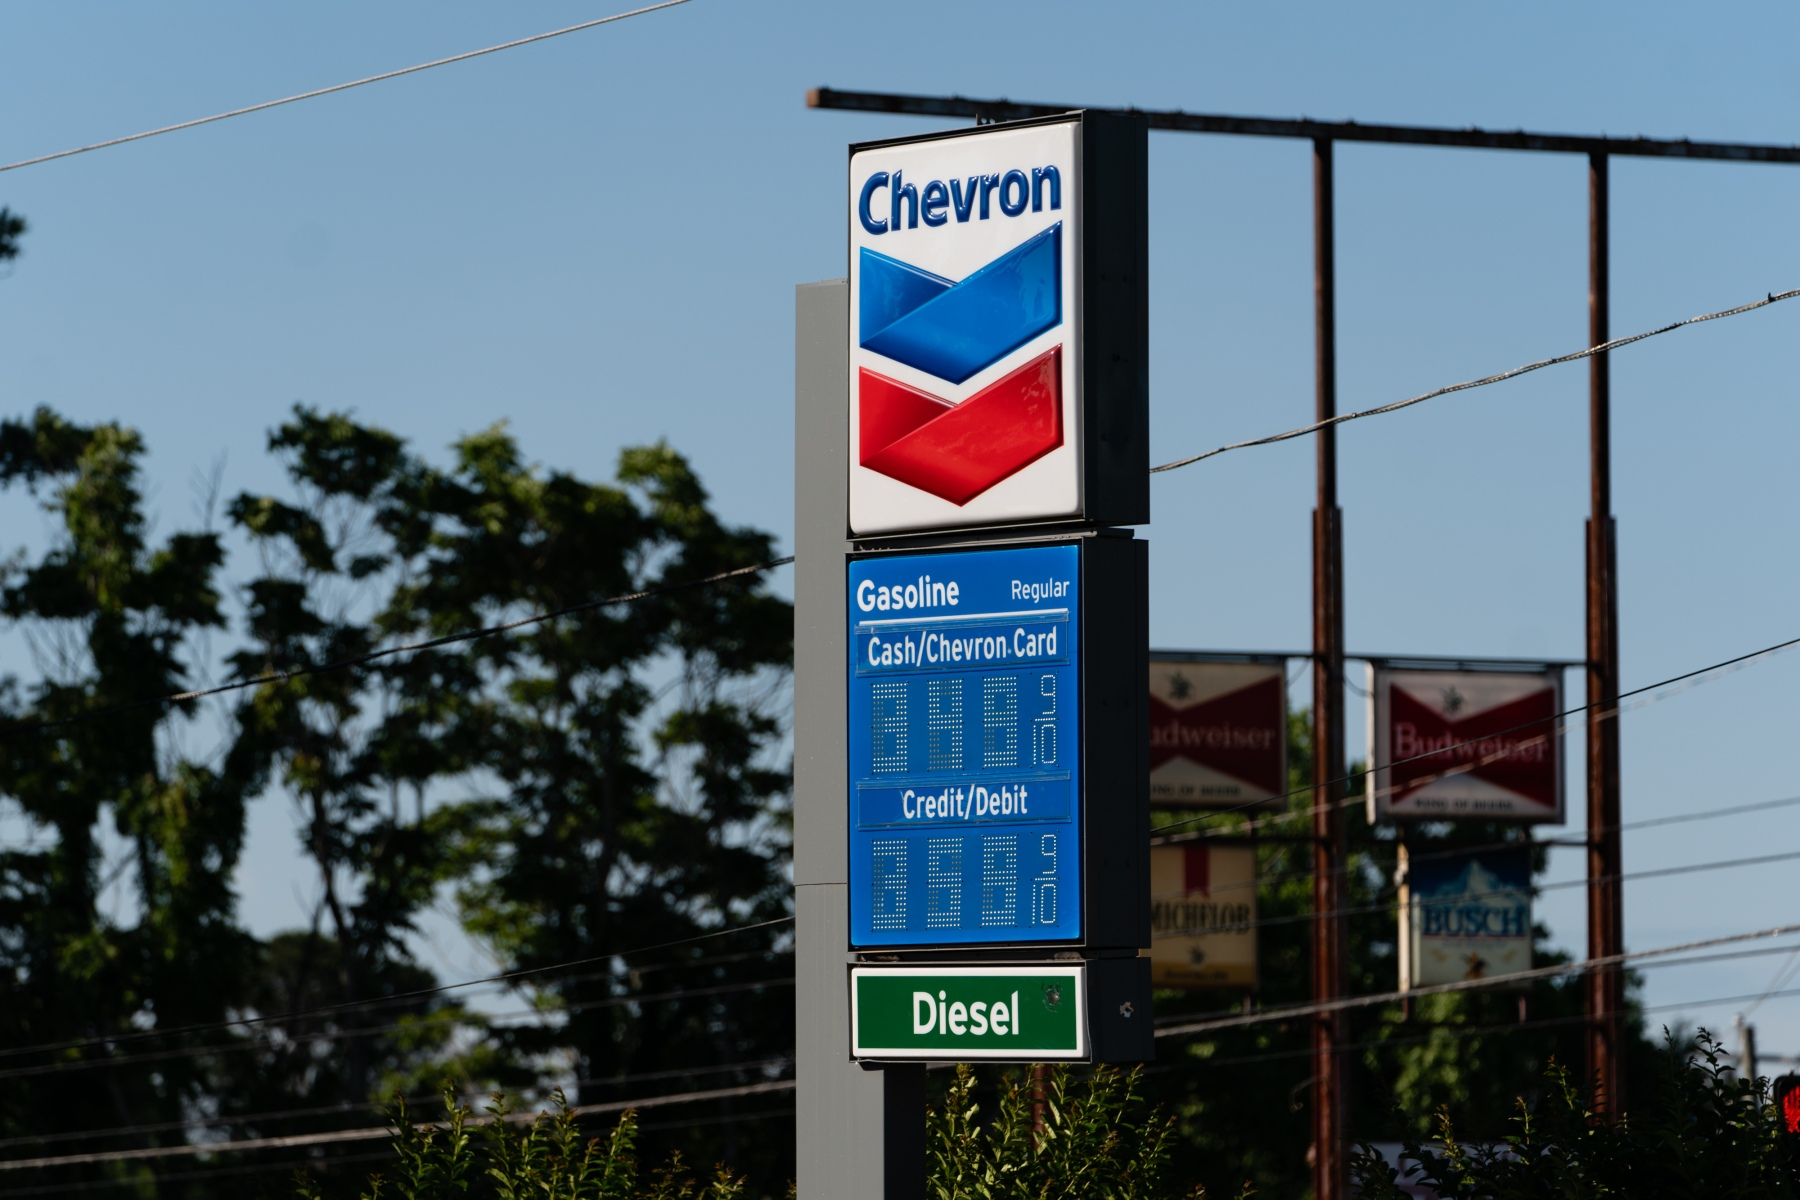 A Chevron Corp. gas station displays a price for regular gas exceeding $3.50 a gallon in Atlanta, Georgia, U.S., on Thursday, May 13, 2021. Five days after a criminal hack shut down deliveries of almost half the gasoline and diesel burned in the eastern U.S., the Atlanta area's reserves of gas and diesel began to plummet. Photographer: Elijah Nouvelage/Bloomberg via Getty Images